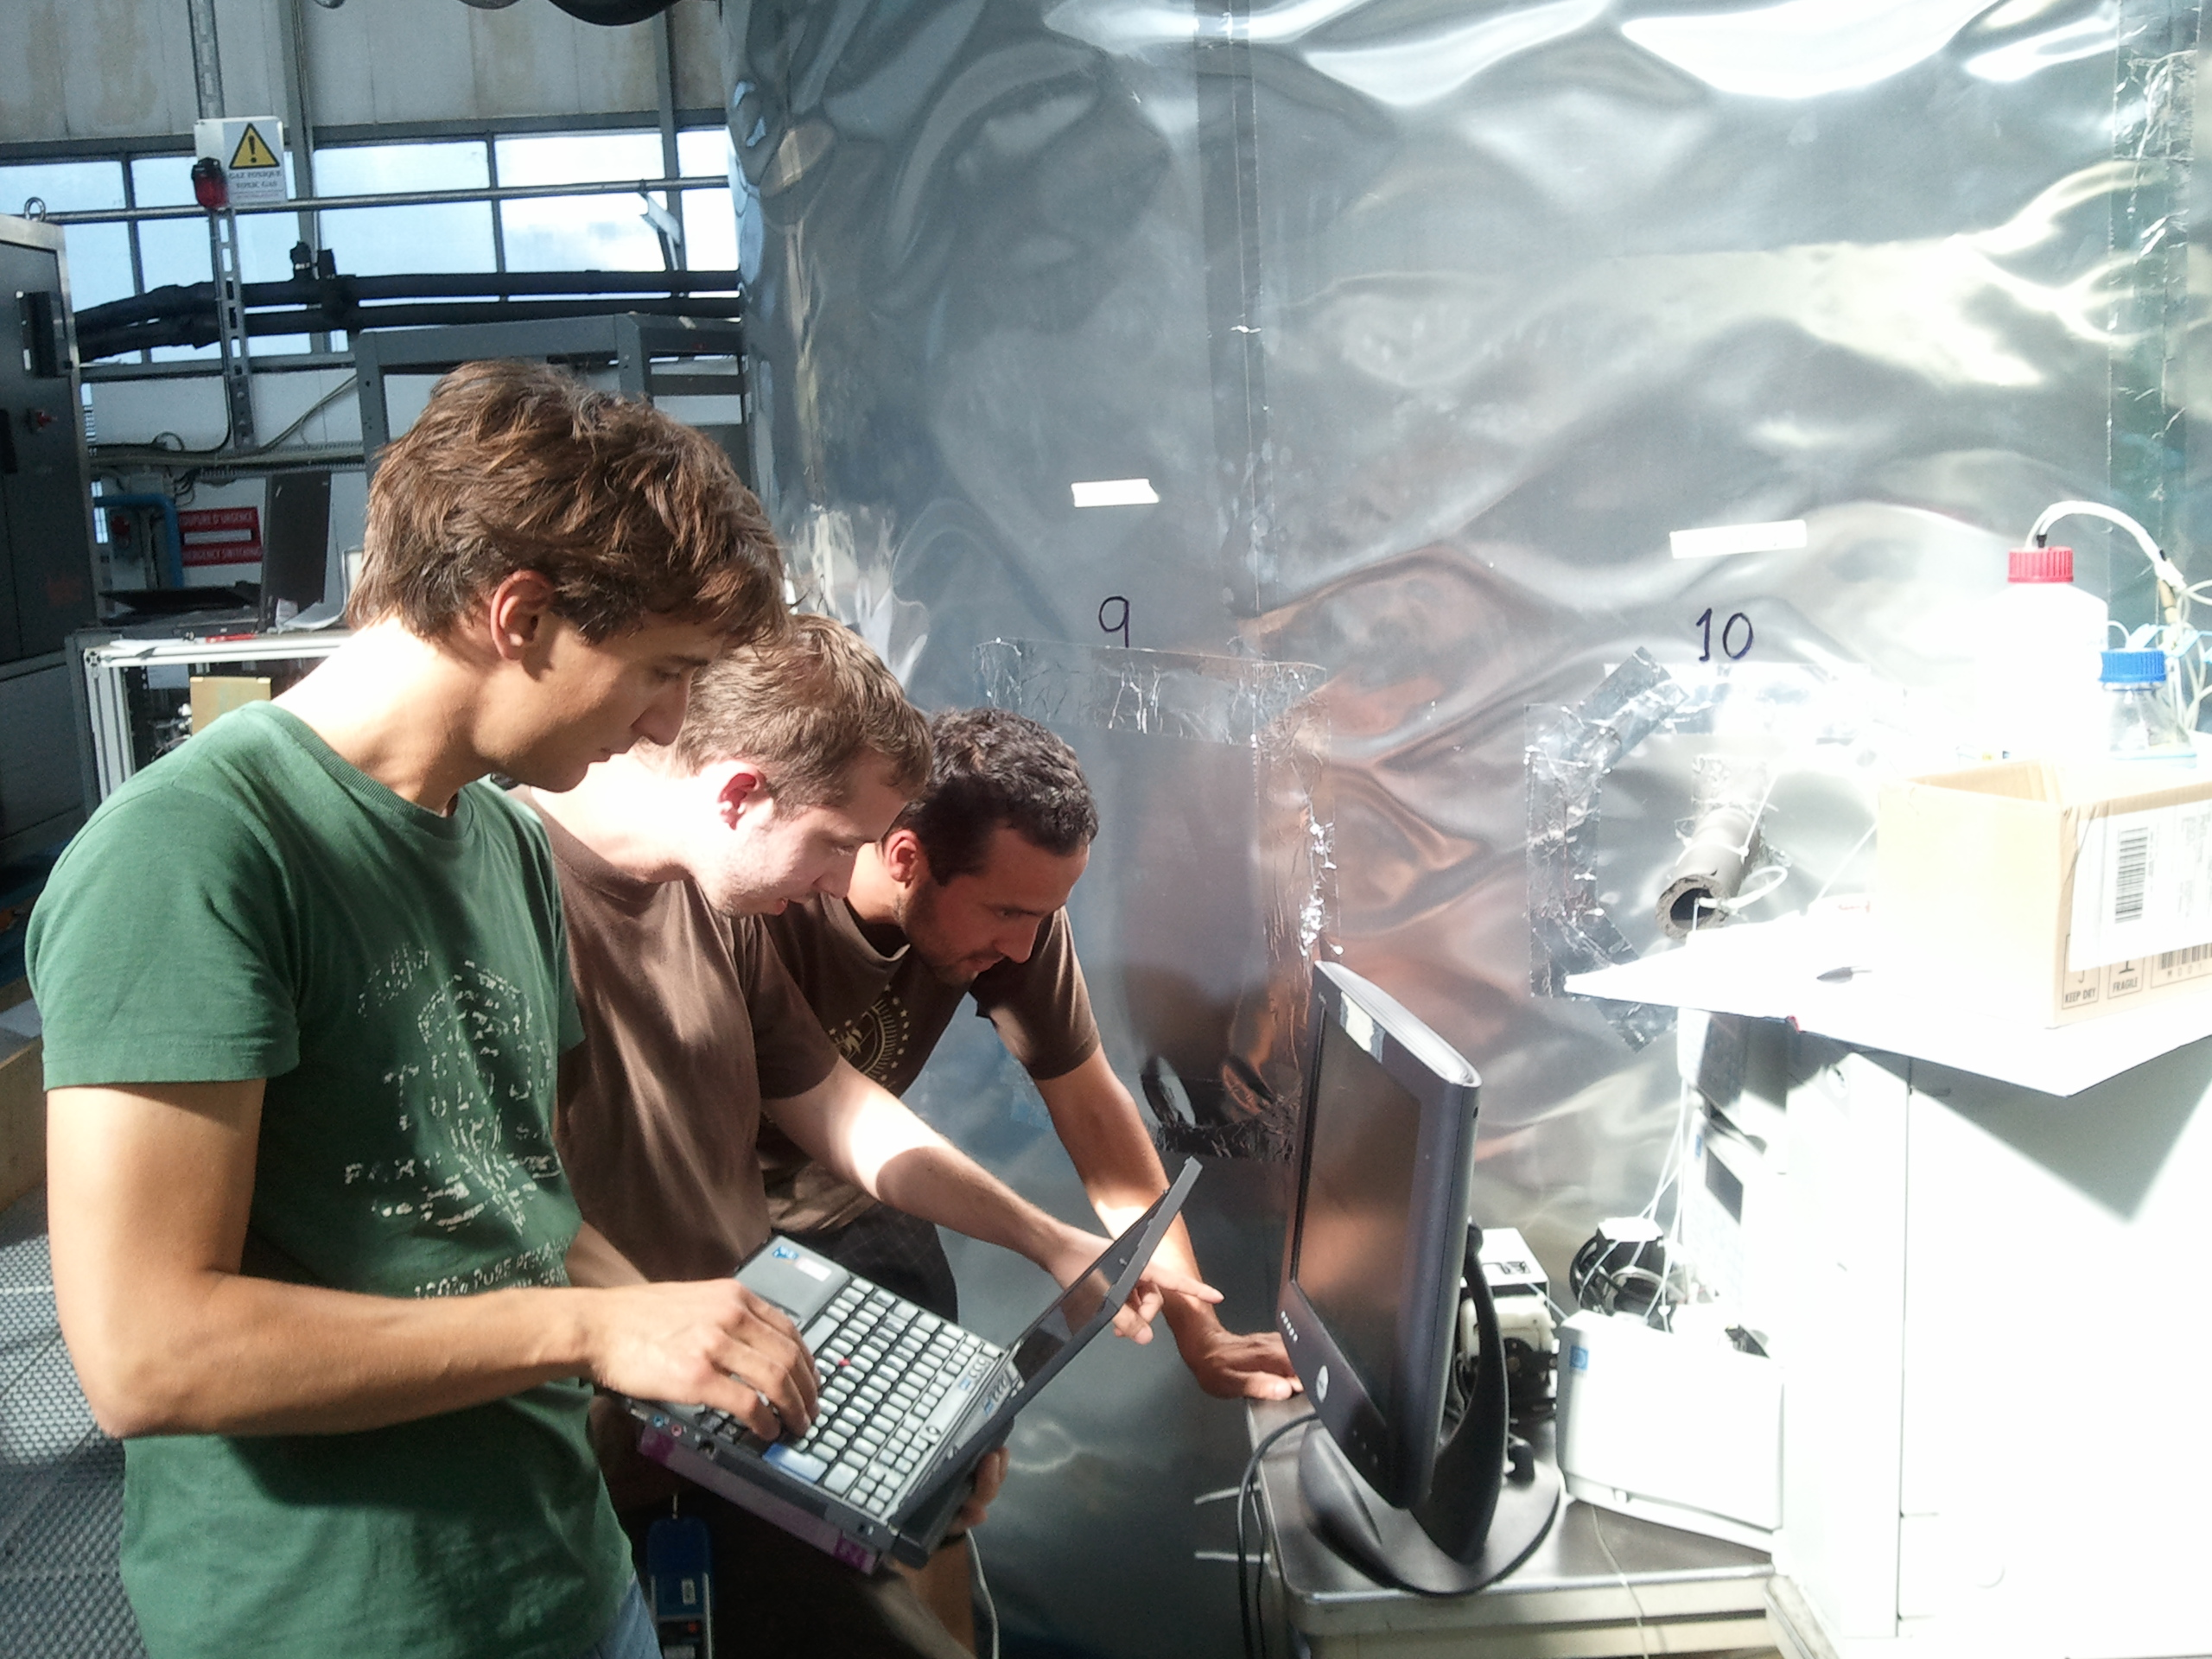 The Ph.D. students Francesco Riccobono, Arnaud Praplan and Federico Bianchi (from left to right) during the discussion of the results of the experiments at CLOUD. Copyright: CERN.